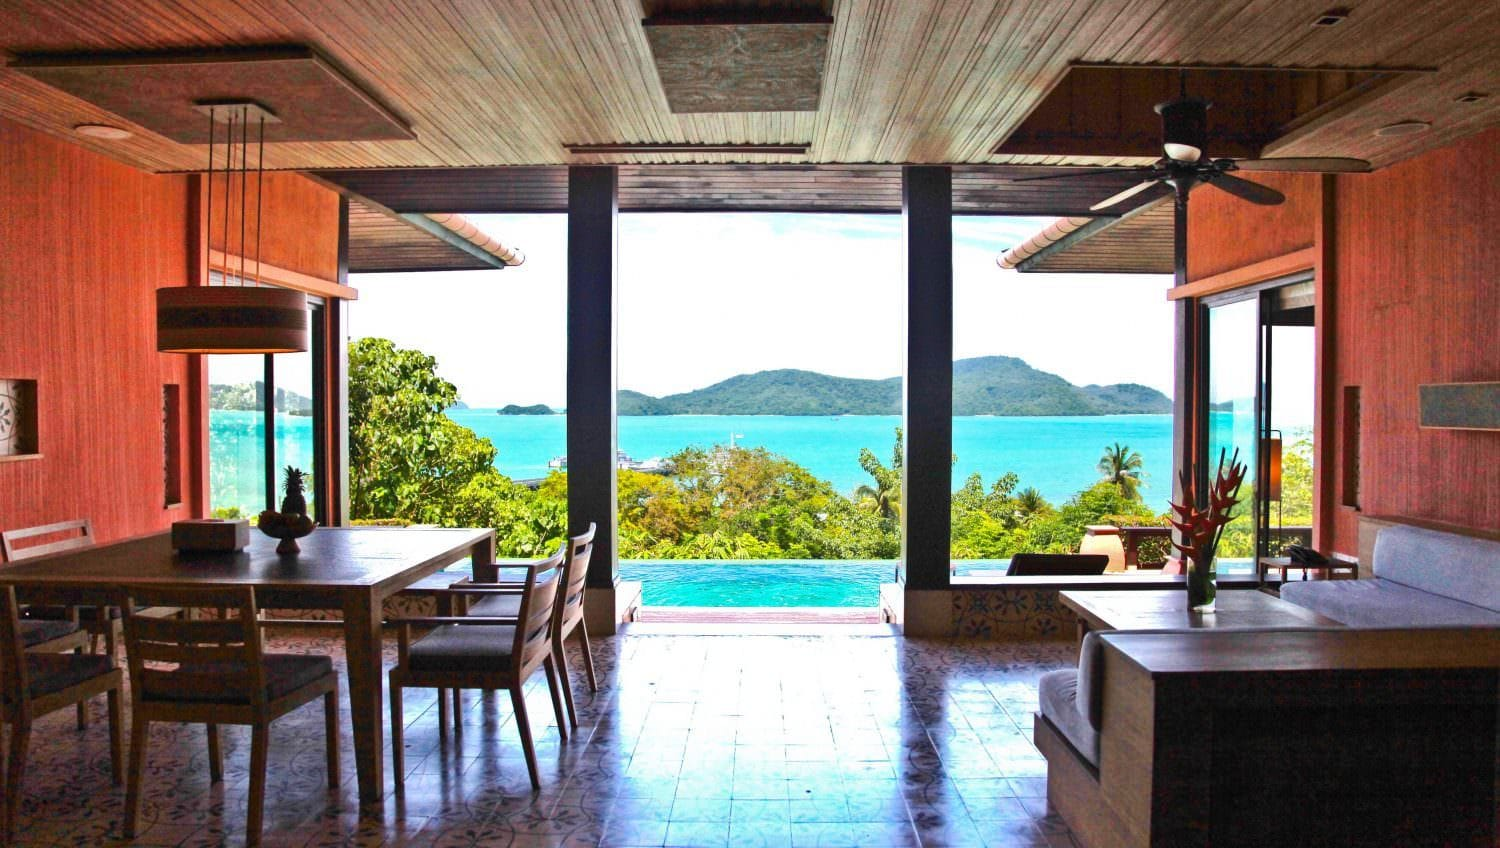 2-Two-Bedroom-Family-Suite-Ocean-View-Sri-Panwa-Luxury-Pool-Villa-Hotel-Phuket-Resort-Spa